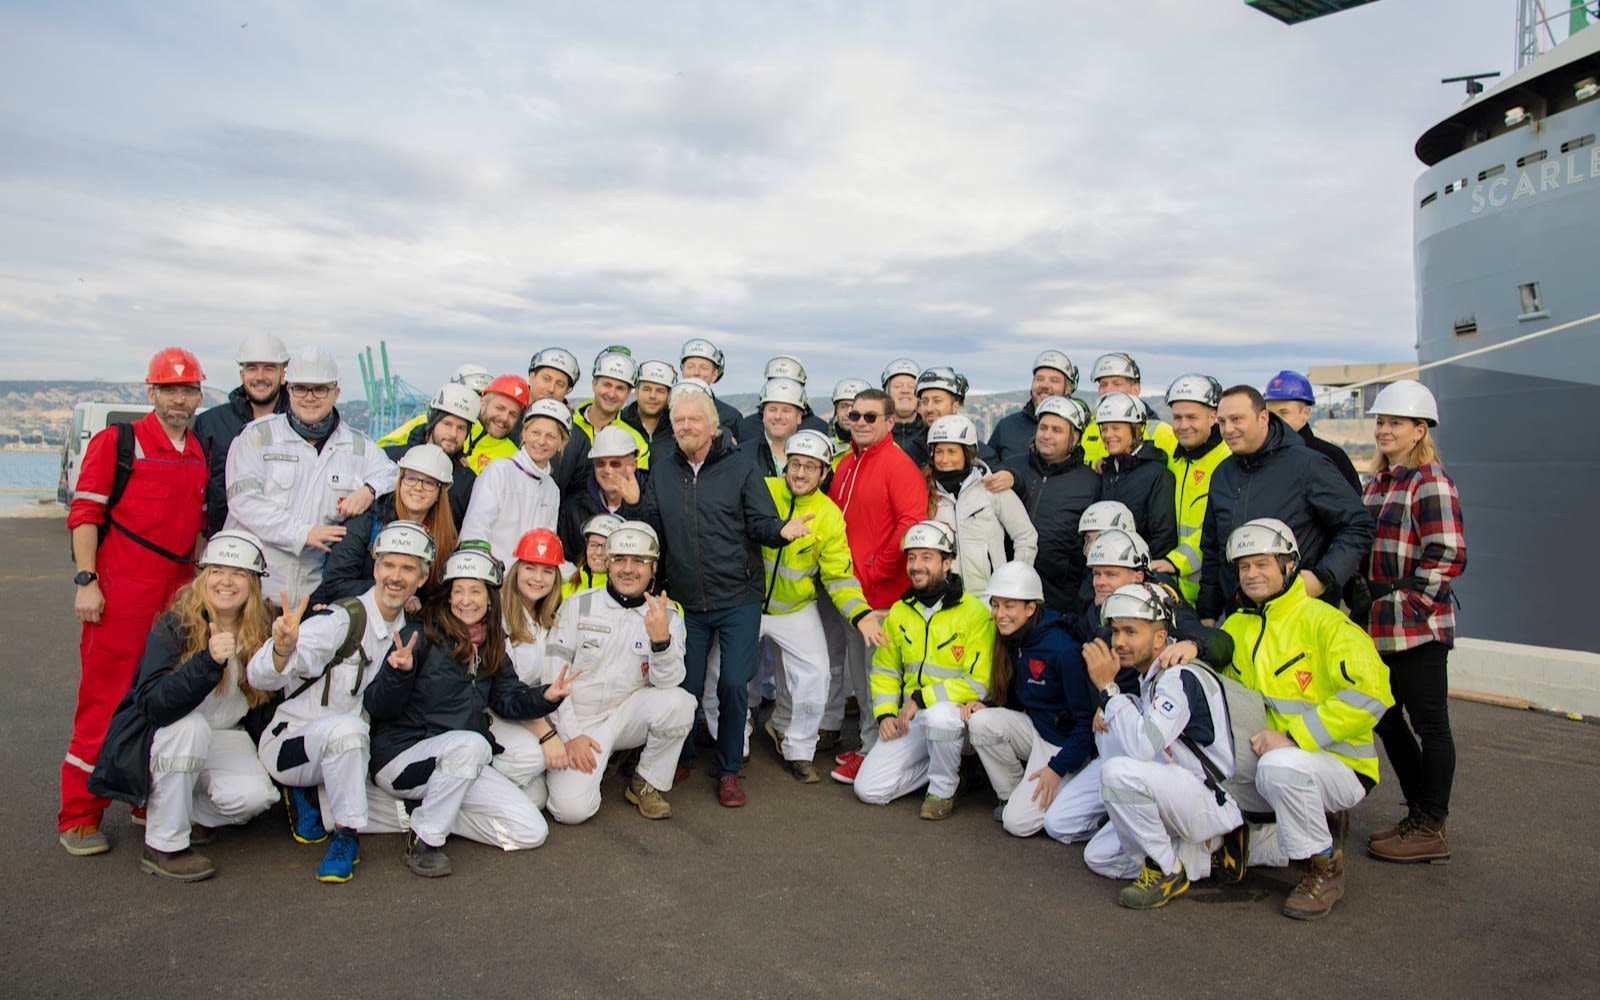 Richard Branson posing with Virgin Voyages' Scarlet Lady ship crew at the port